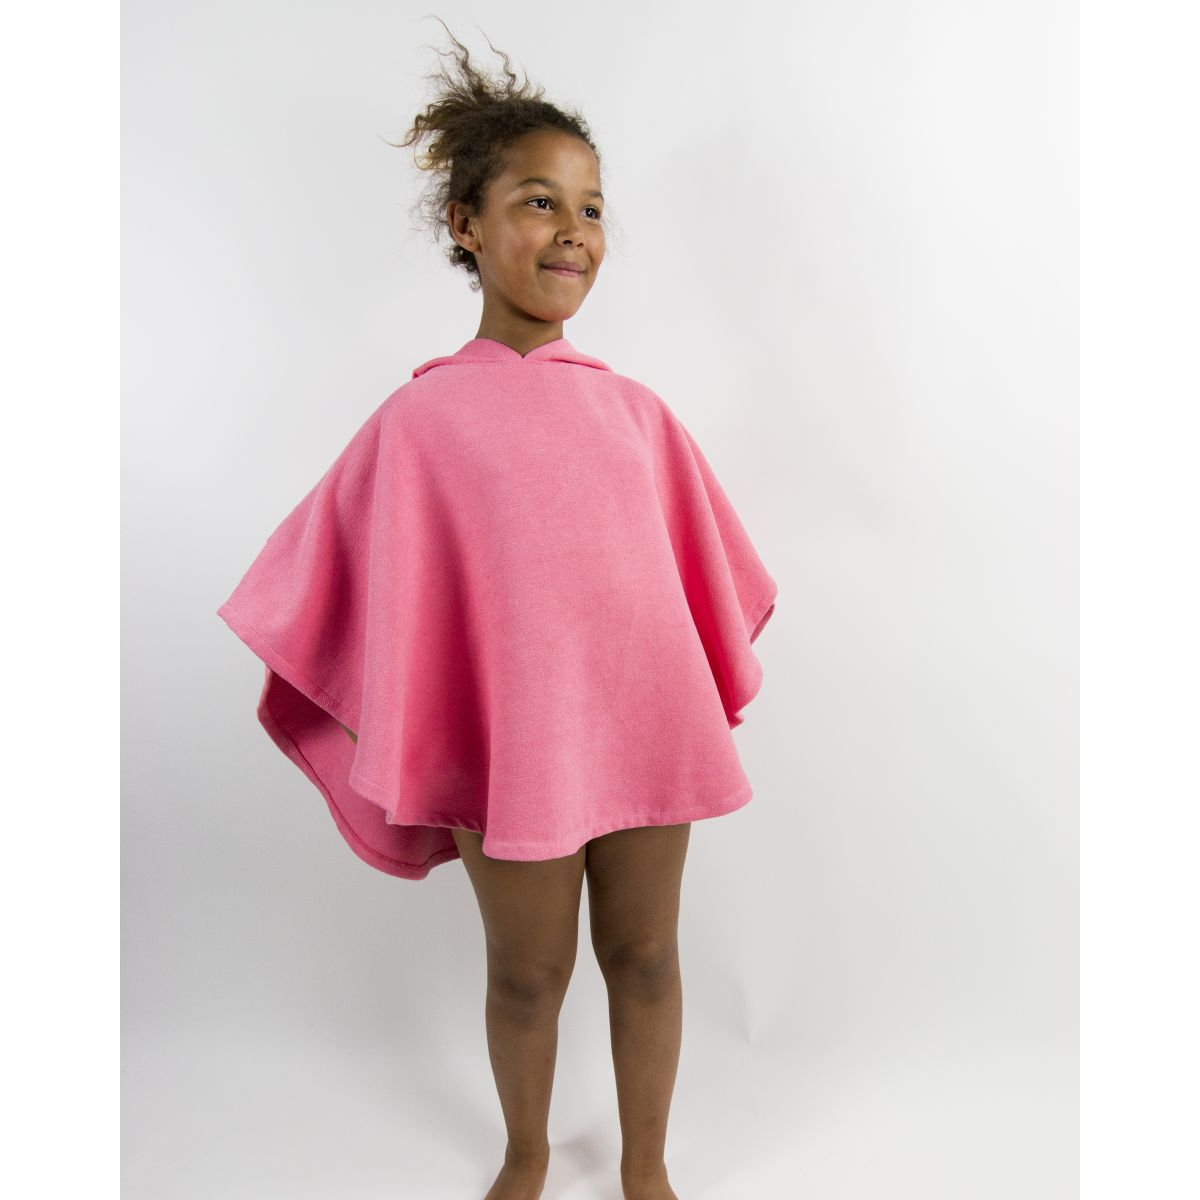 poncho de plage enfant microfibre anuanua rose hollywood vasion. Black Bedroom Furniture Sets. Home Design Ideas